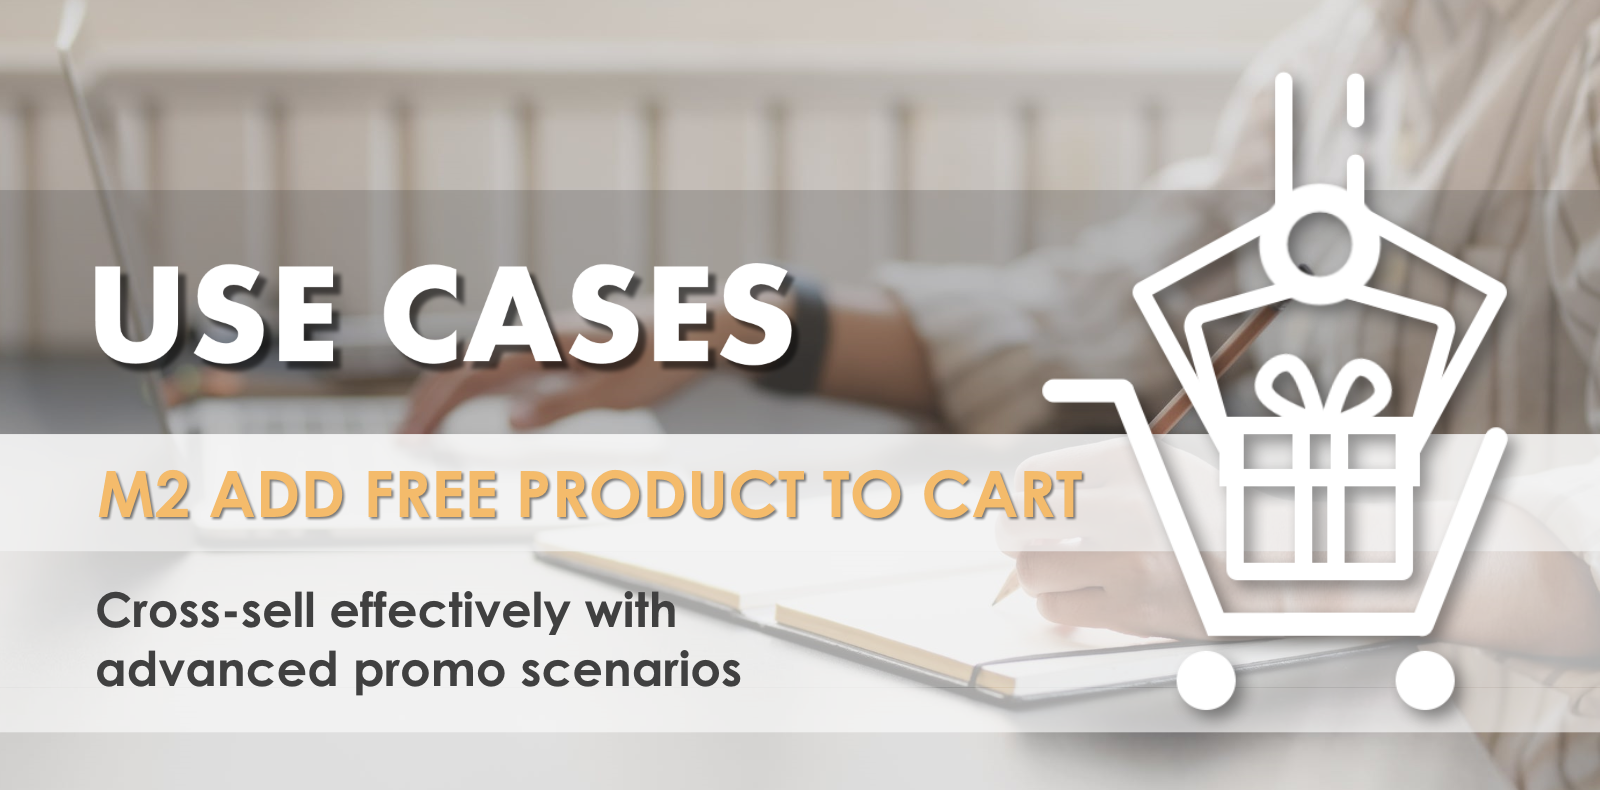 Magento 2 Cross-Selling Scenarios - Use Cases of Add Free Products to Cart extension